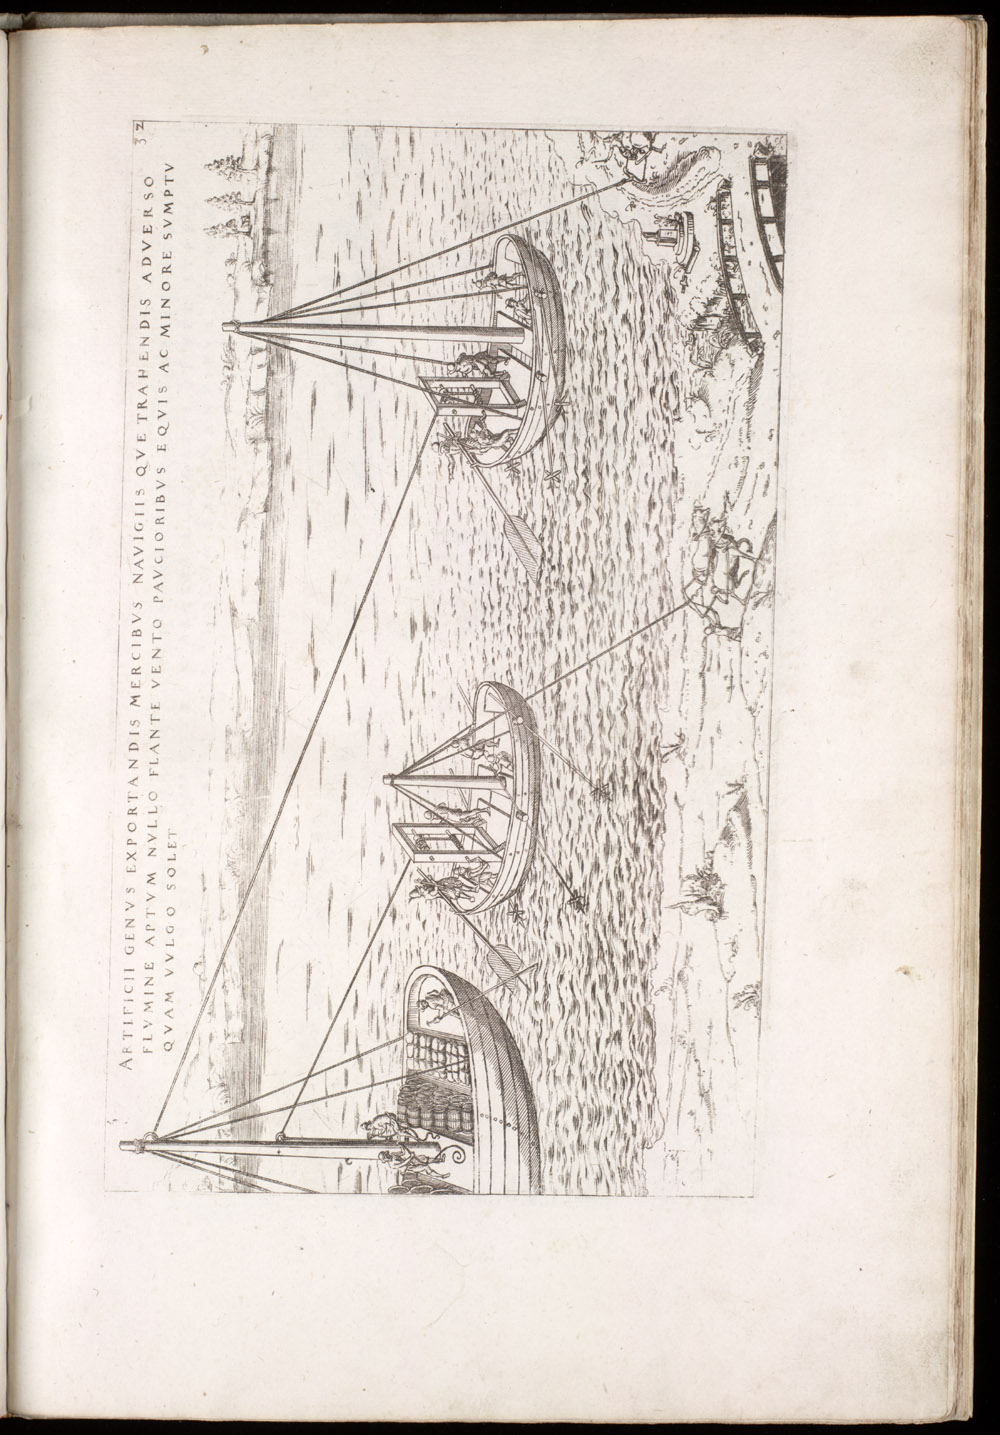 Plate 32 [Tugboats],  Image number:SIL4-2-97a